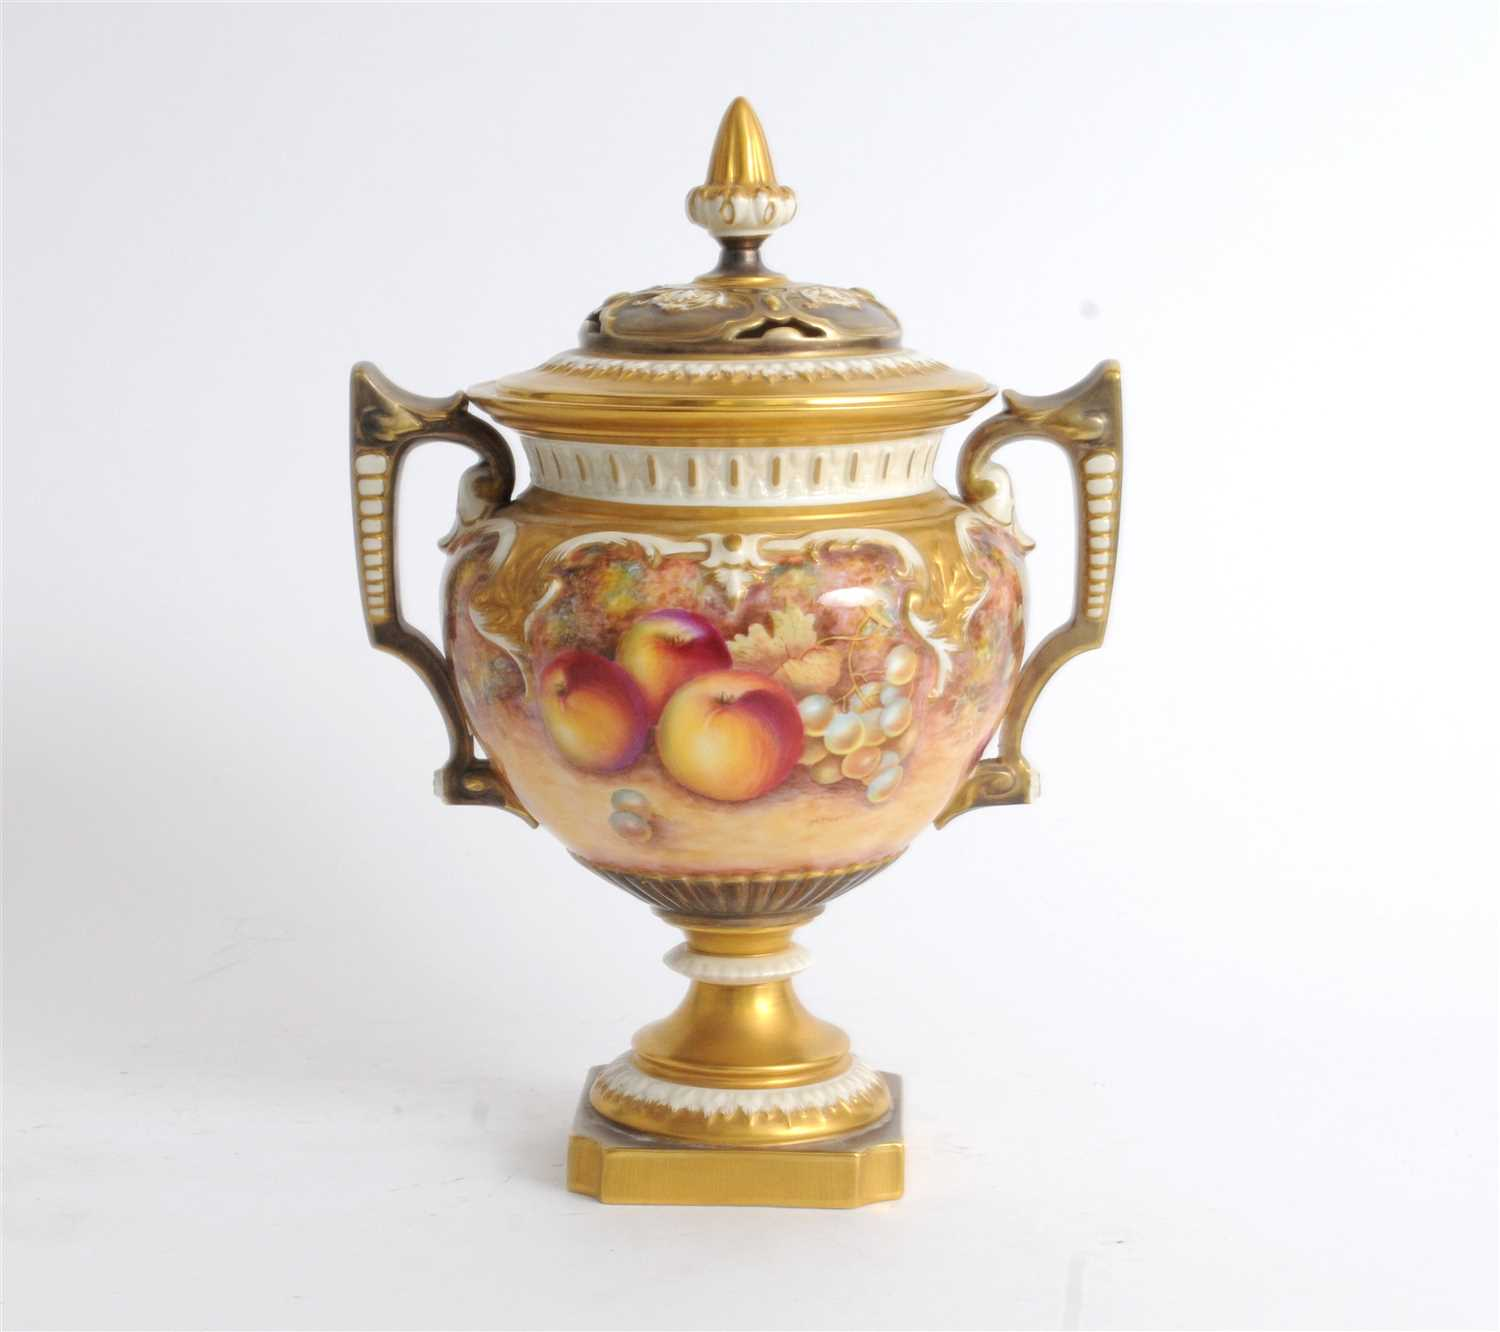 Lot 76 - Royal Worcester twin-handled fruit painted vase and cover